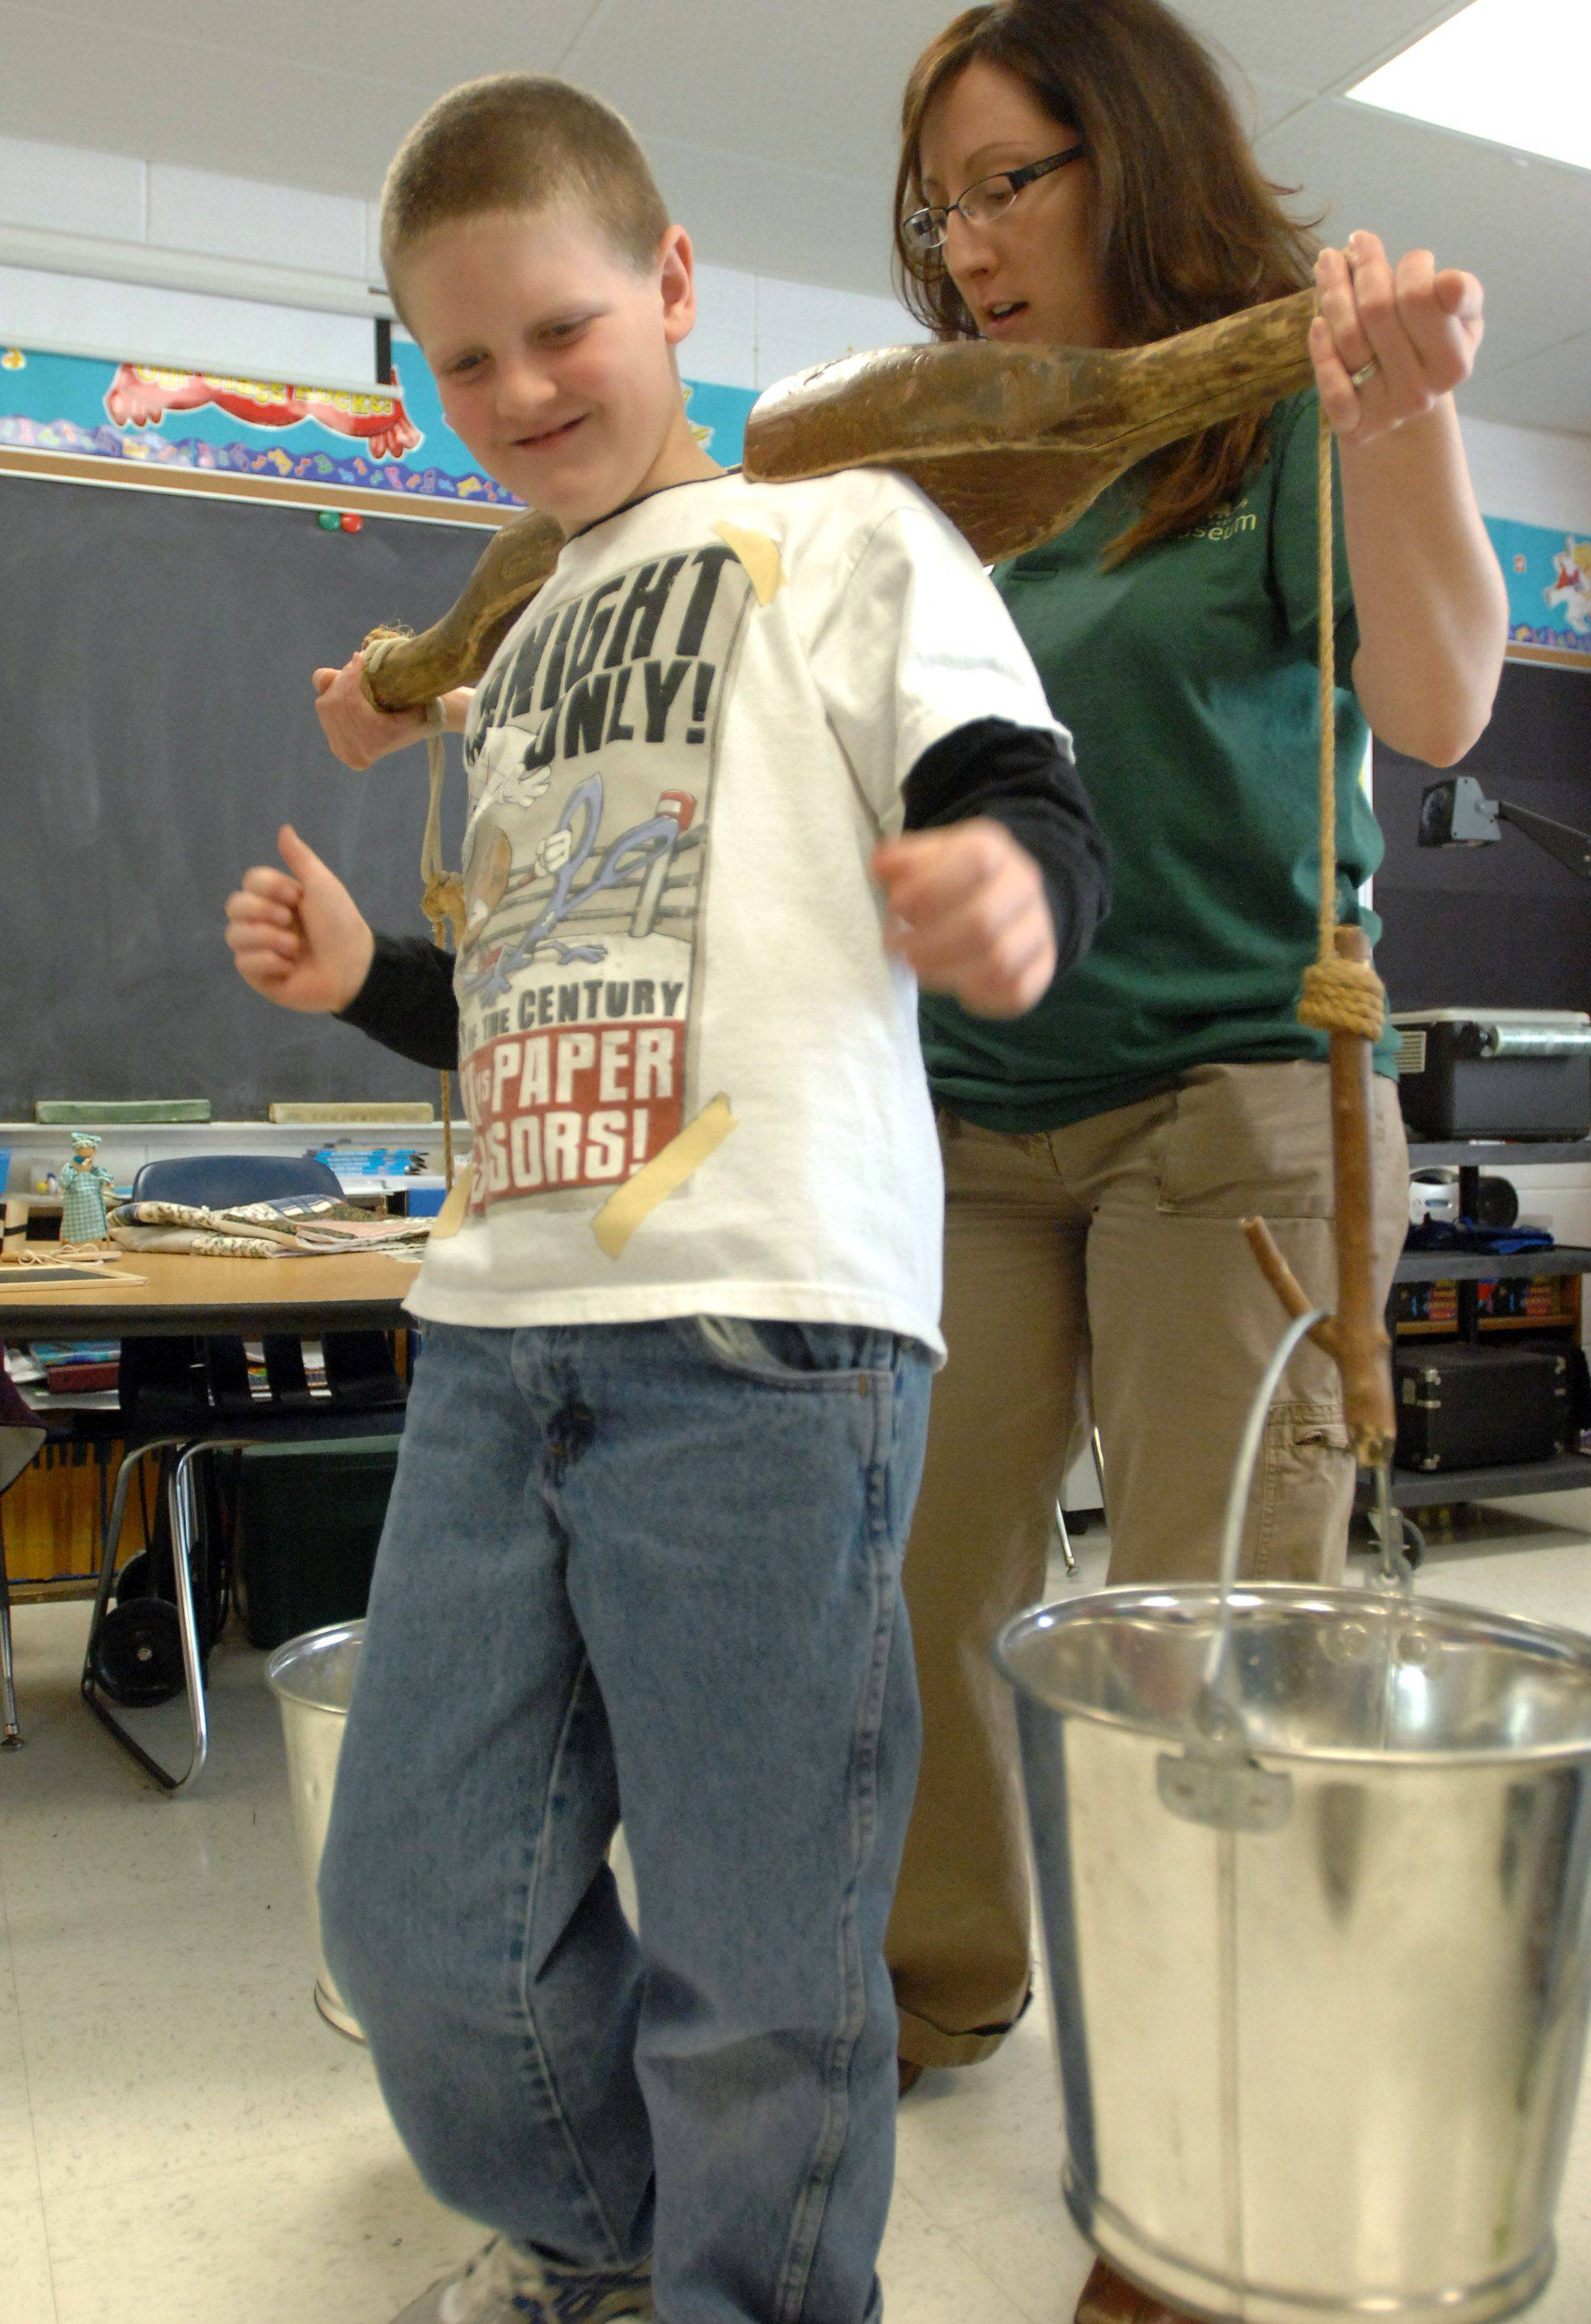 Lake County Discovery Museum educator Seleena Kuester shows Woodland Elementary East third grade student Owen Brown what it's like to use a yoke to carry buckets of water to Thursday in Gages Lake. Students from three classes participated in Pioneer Day rotating through various activities.